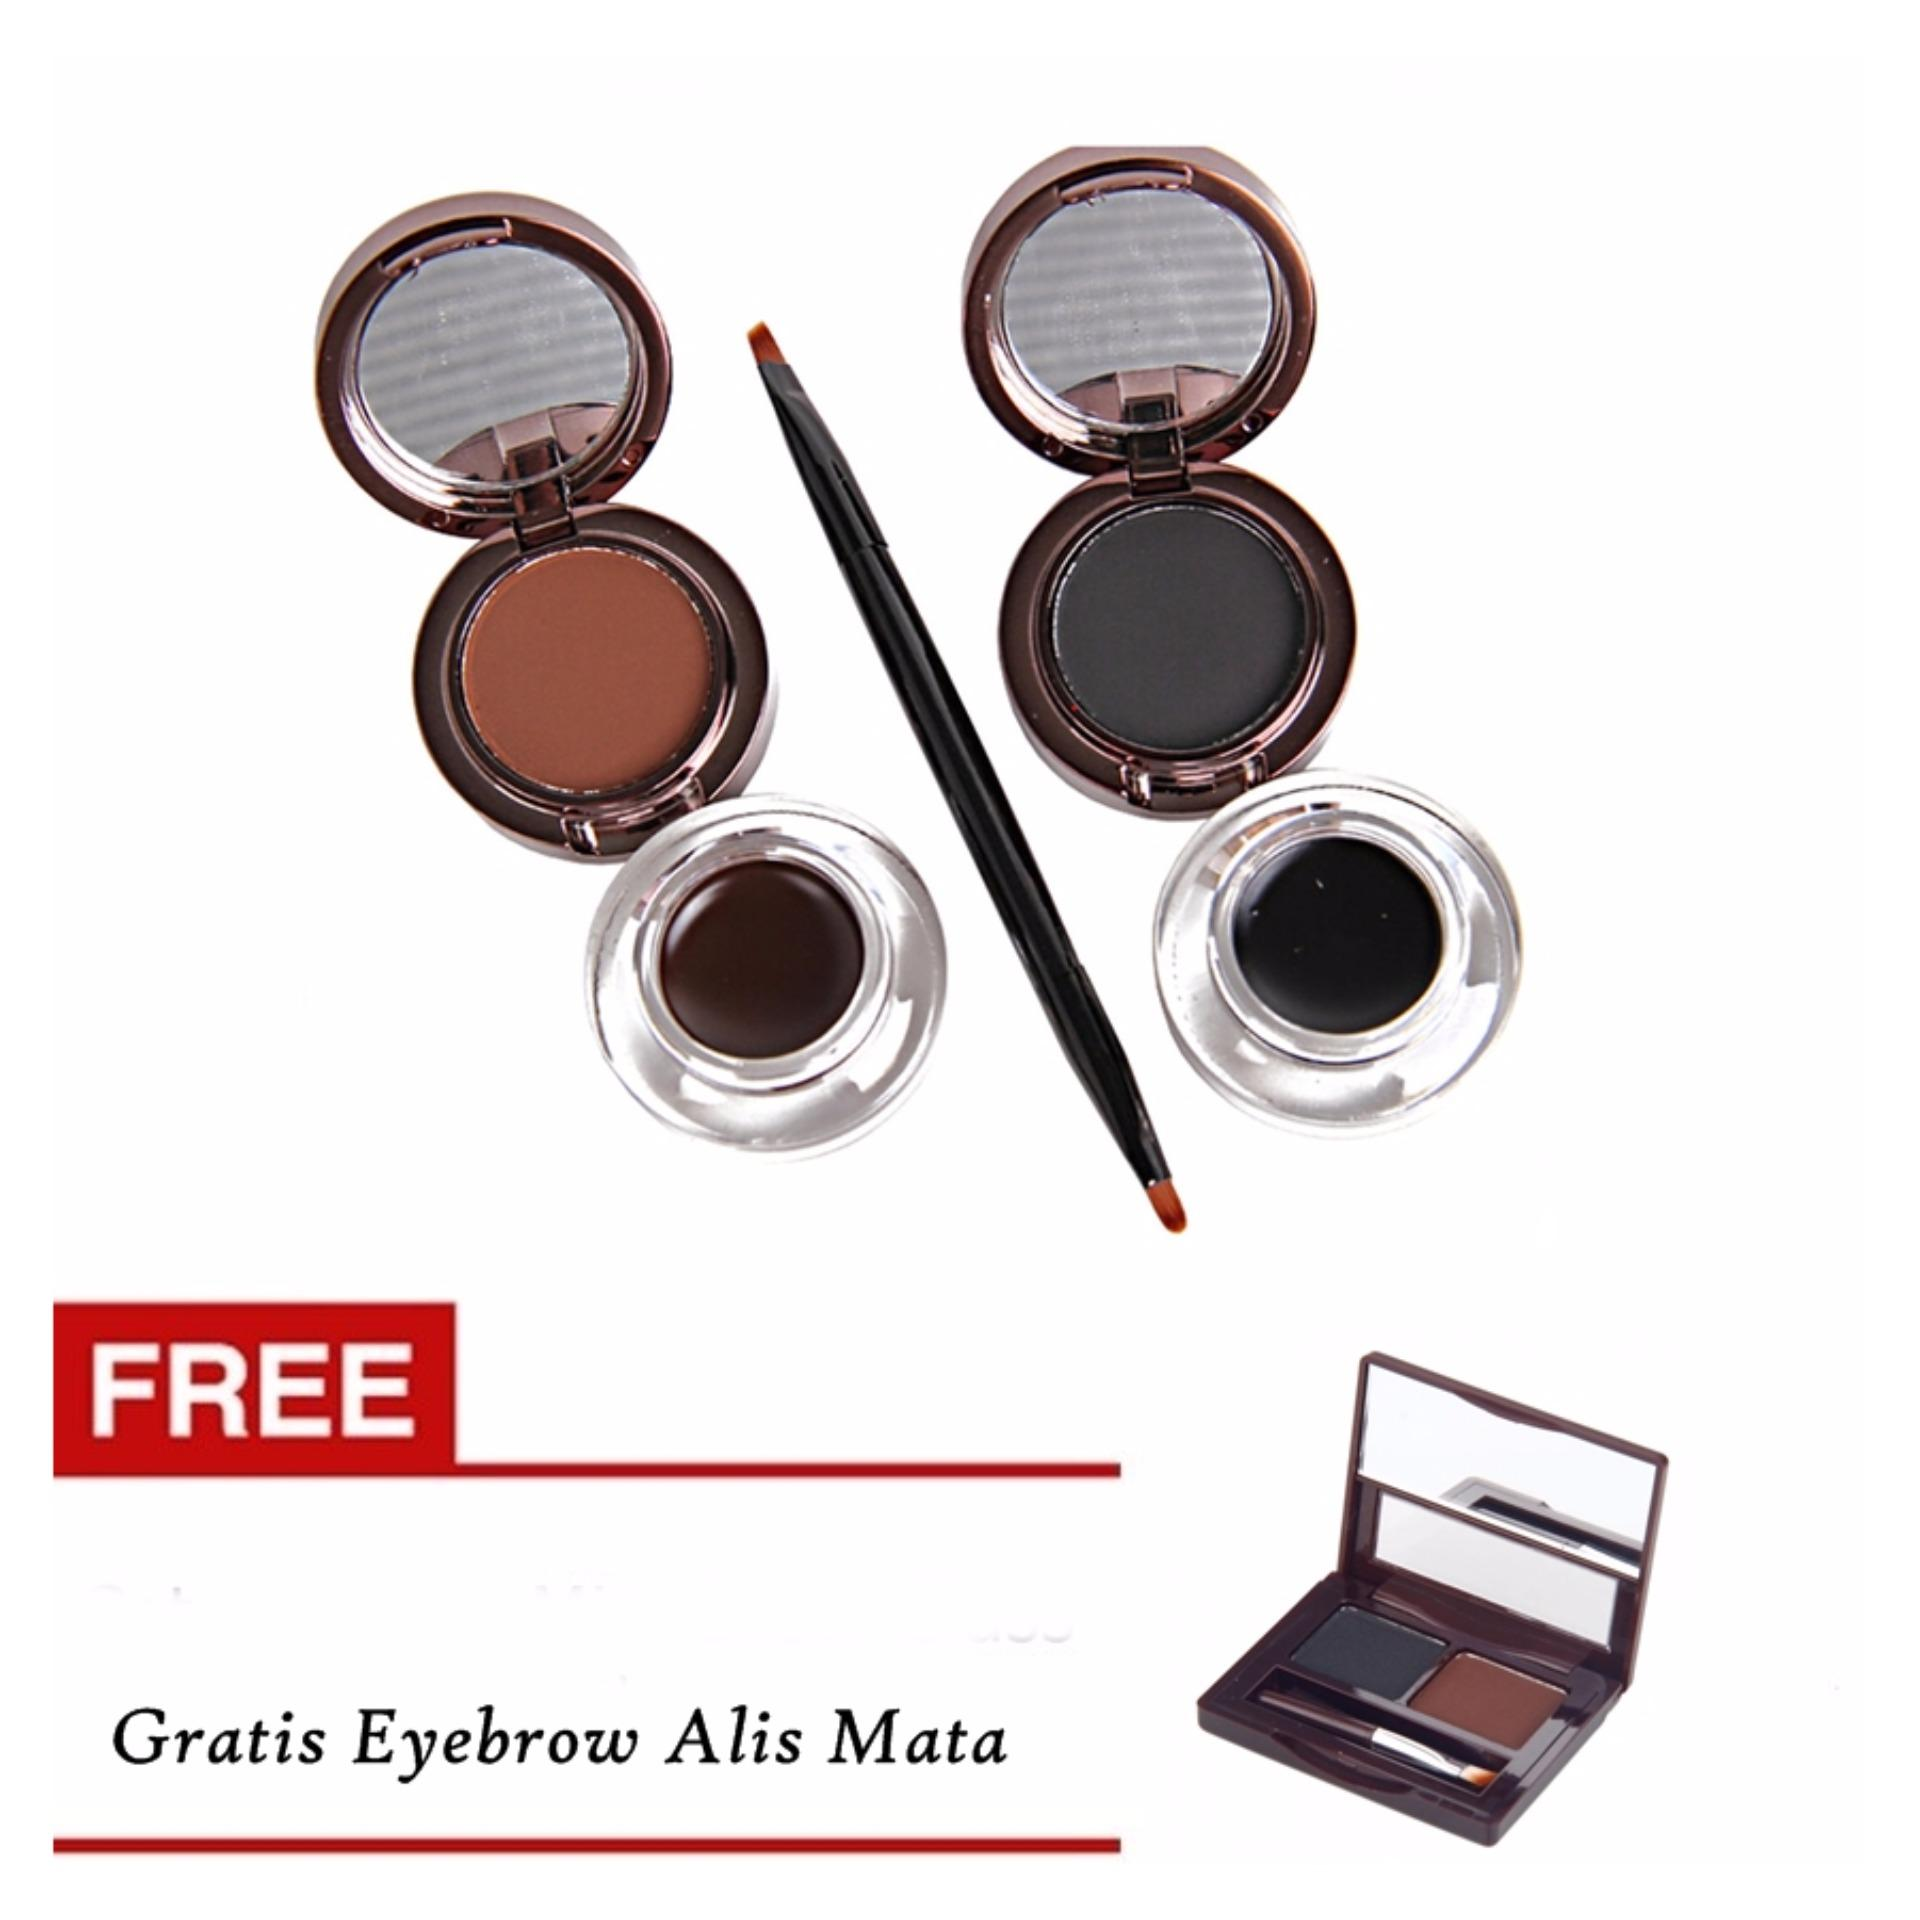 Long lasting up to 24h Kiss Beauty Alis Mata 4in1 Eyeliner & Eyebrow 24 Hours -